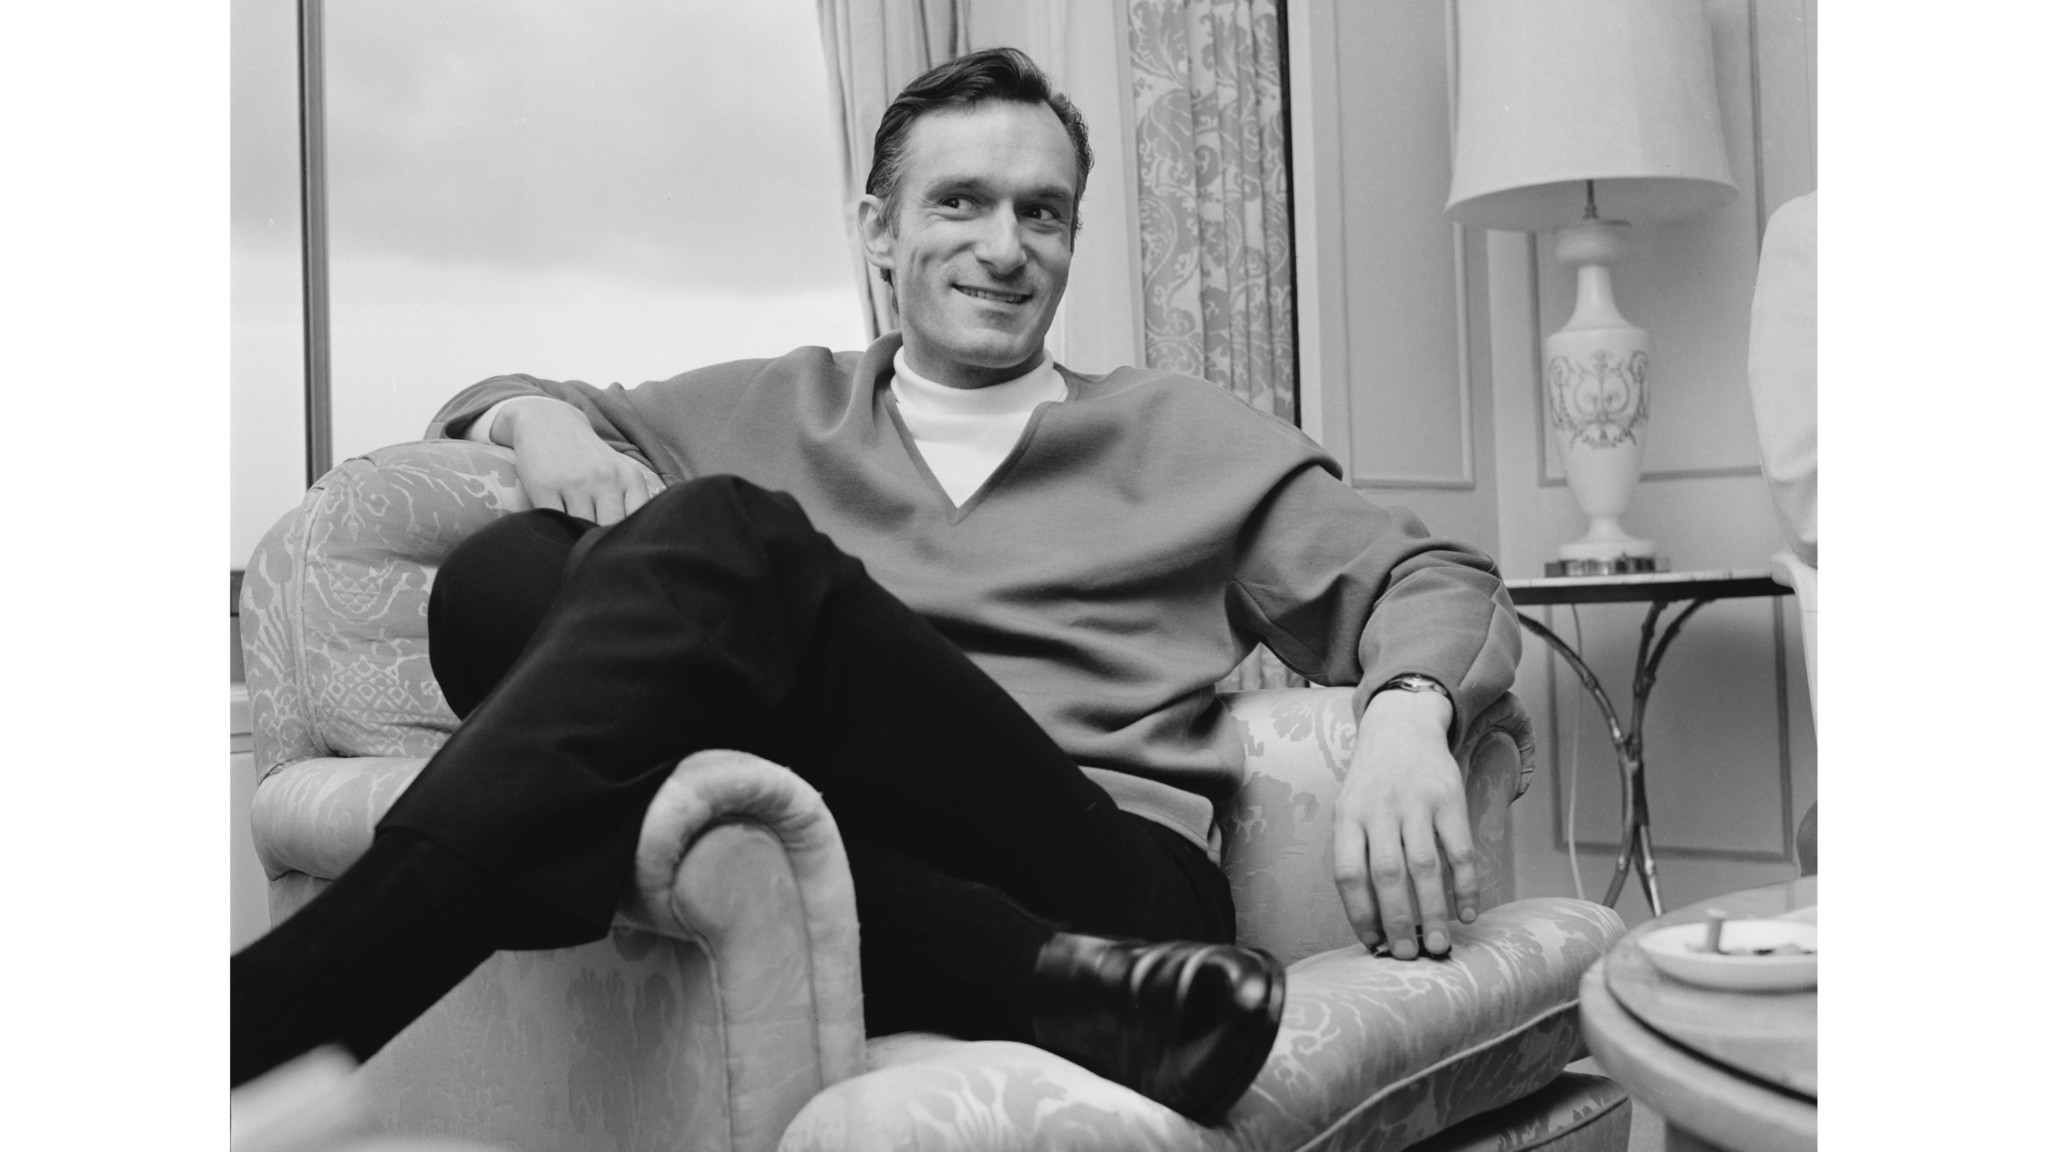 Hugh Hefner, founder of the Playboy empire, relaxes during a visit to England in 1966. (John Downing / Getty Images)